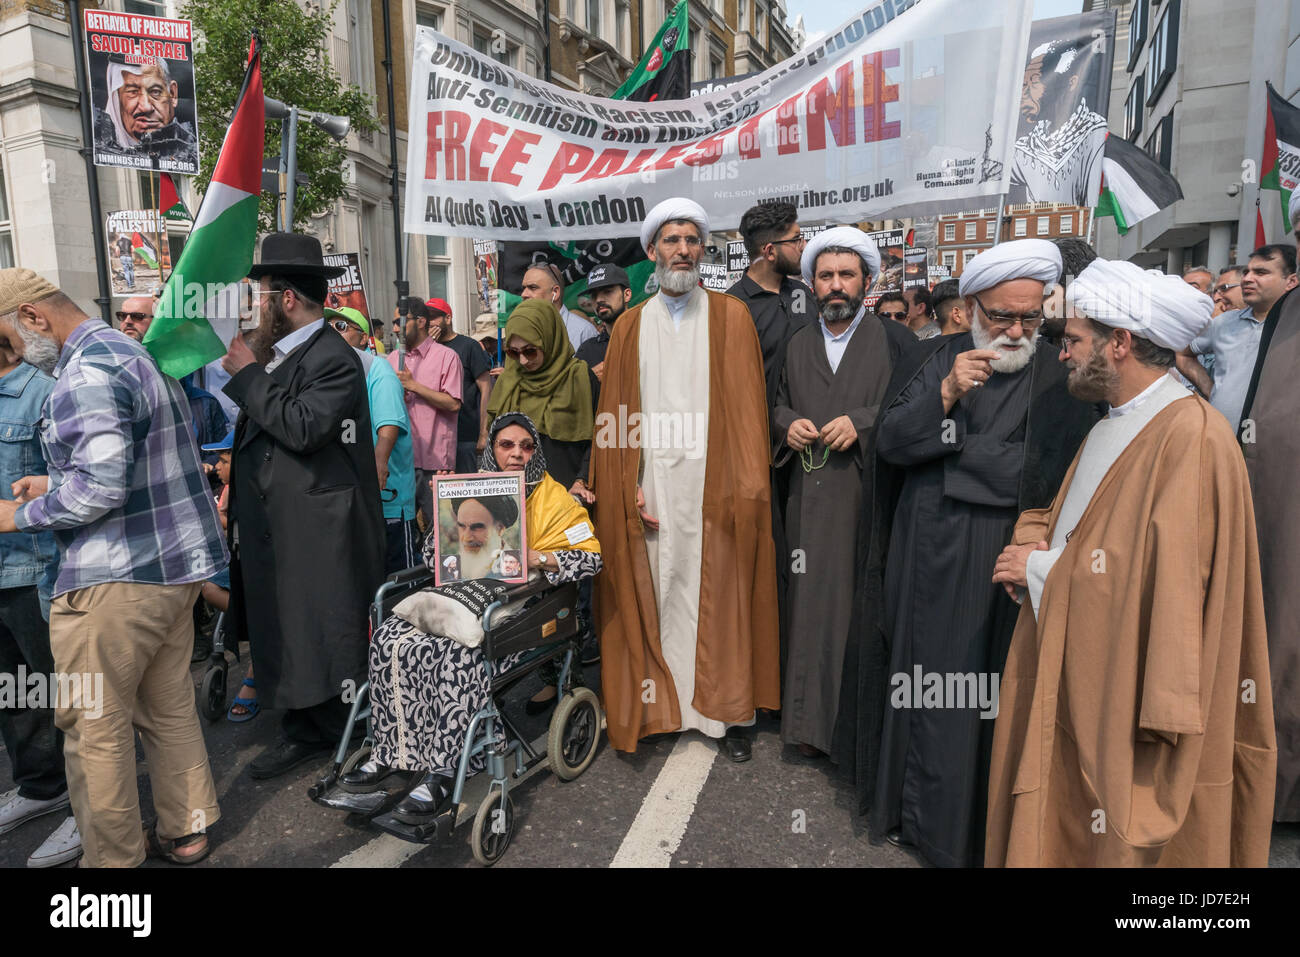 June 18, 2017 - London, UK - London, UK. 18th June 2017. Imans gather with others at the head of the annual Al Quds Stock Photo